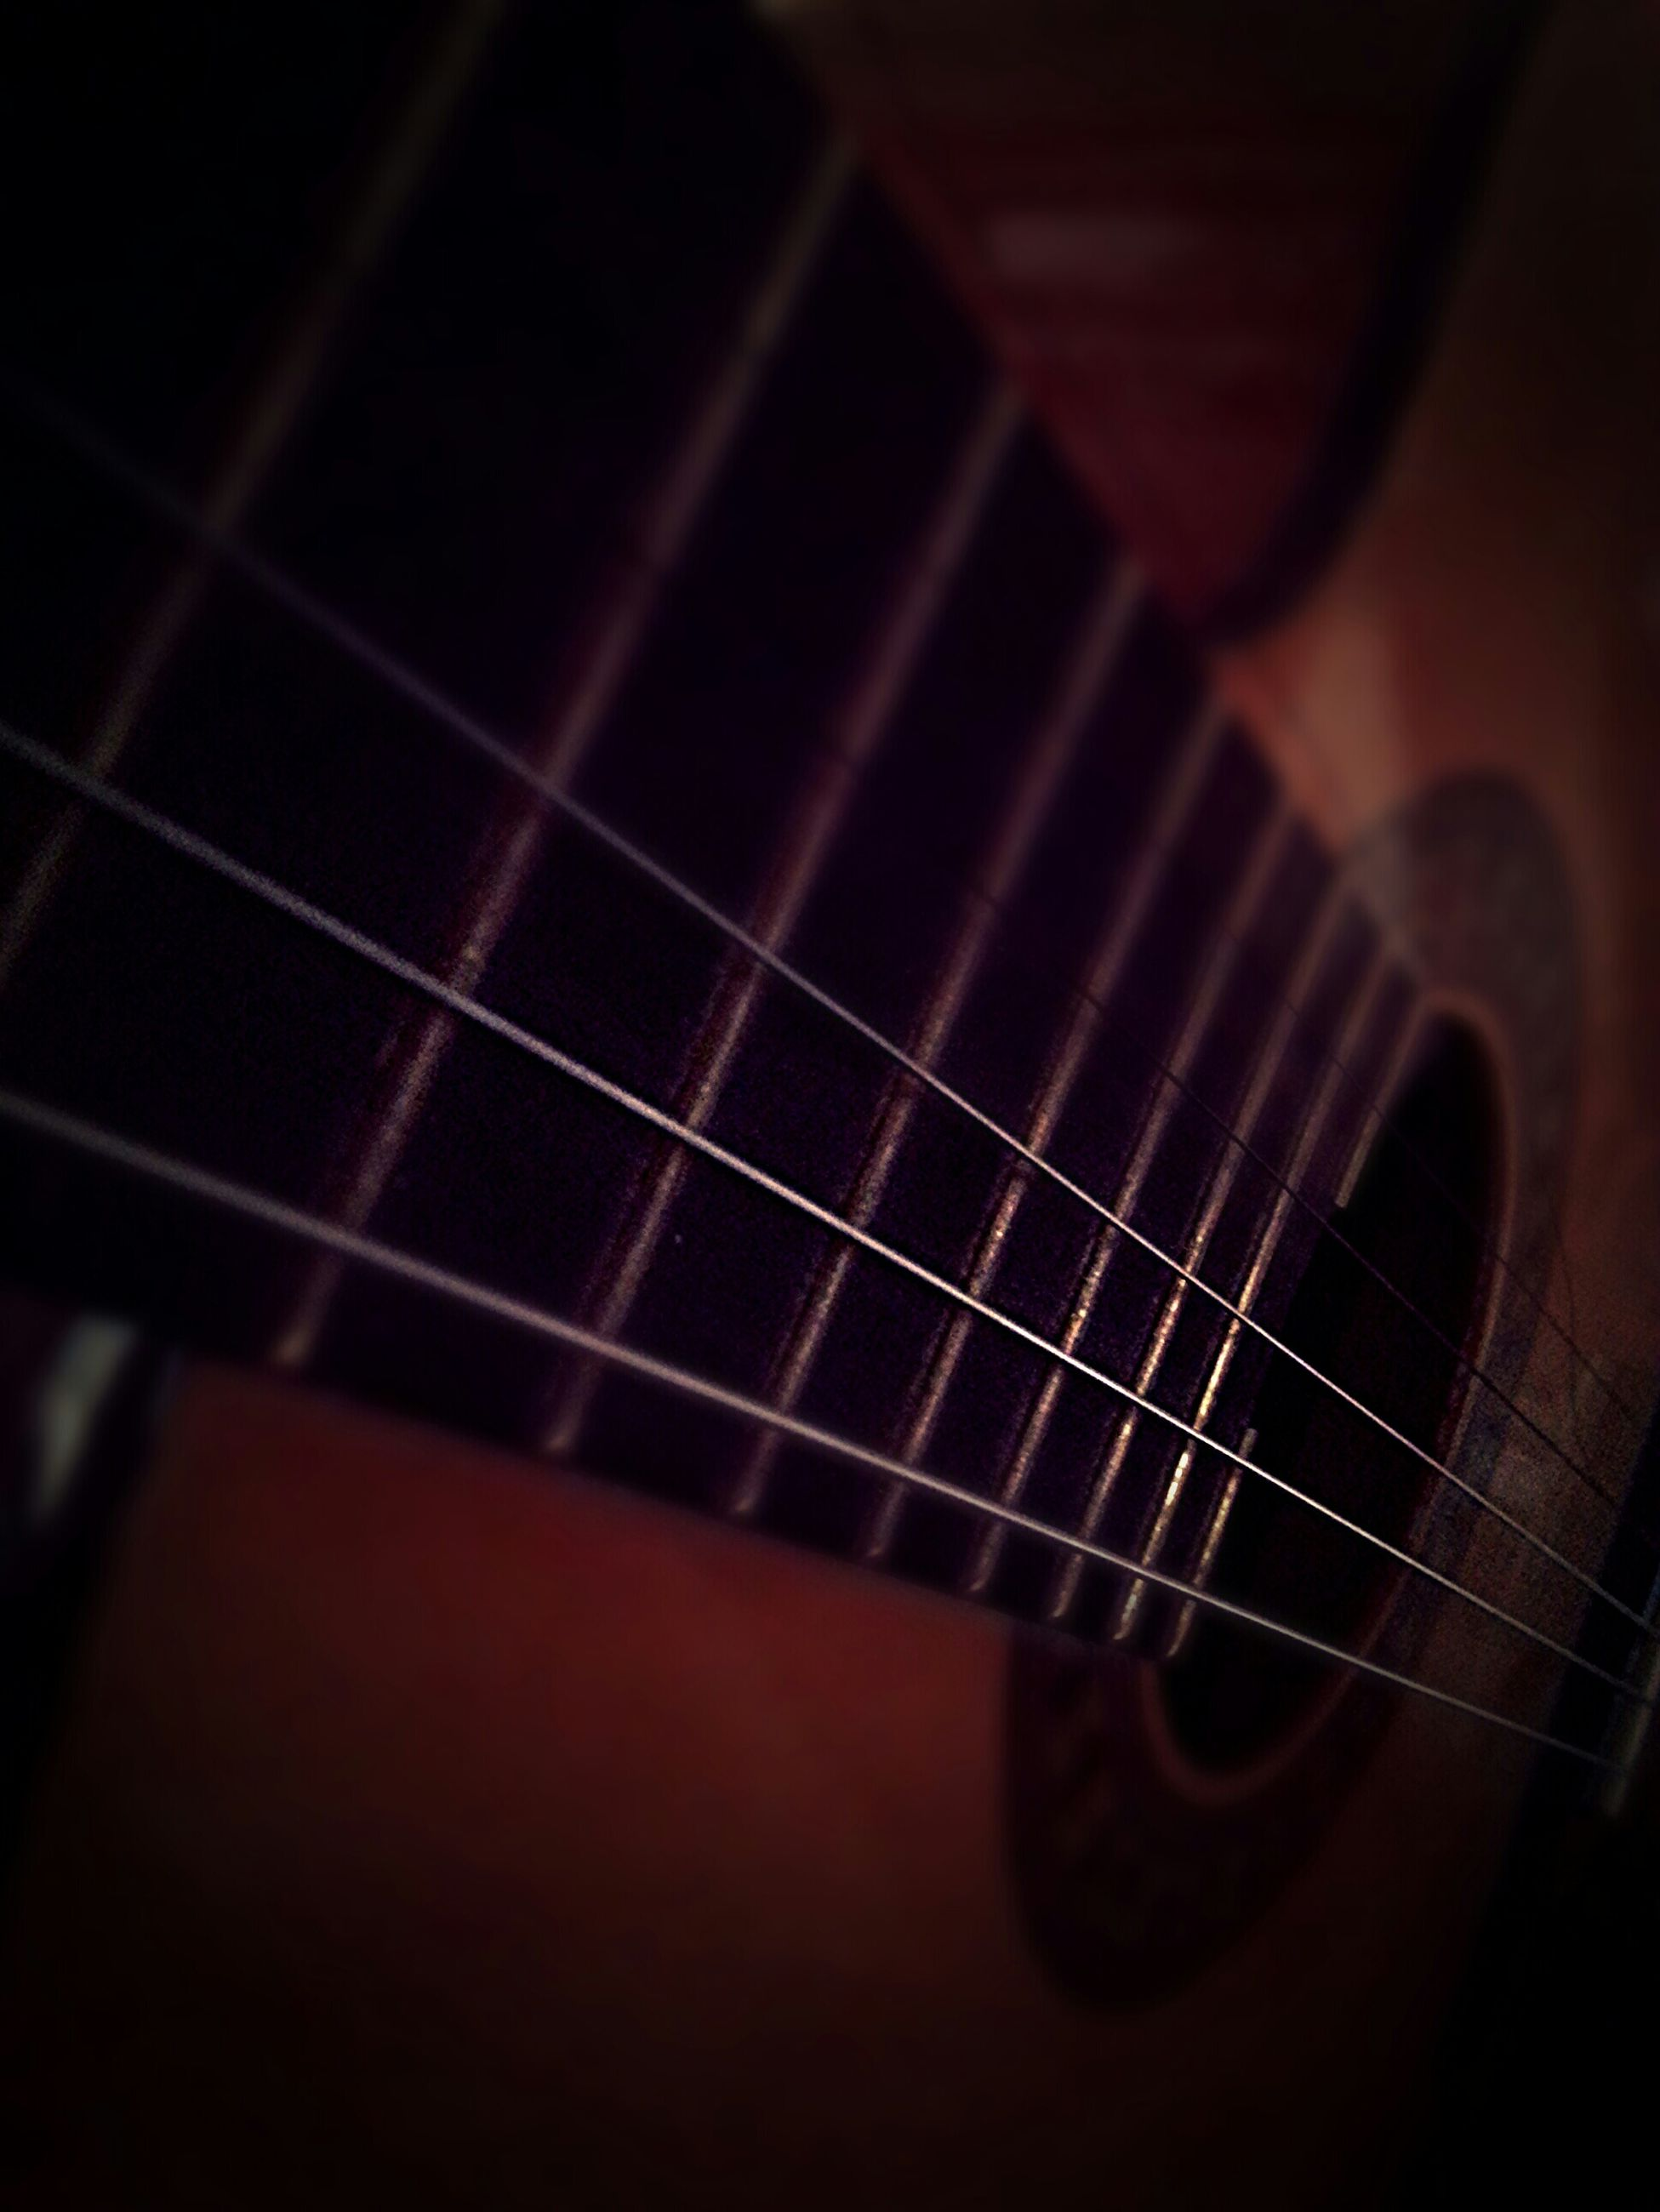 indoors, music, musical instrument, musical instrument string, arts culture and entertainment, guitar, musical equipment, close-up, selective focus, string instrument, acoustic guitar, technology, part of, metal, no people, illuminated, high angle view, cropped, single object, connection